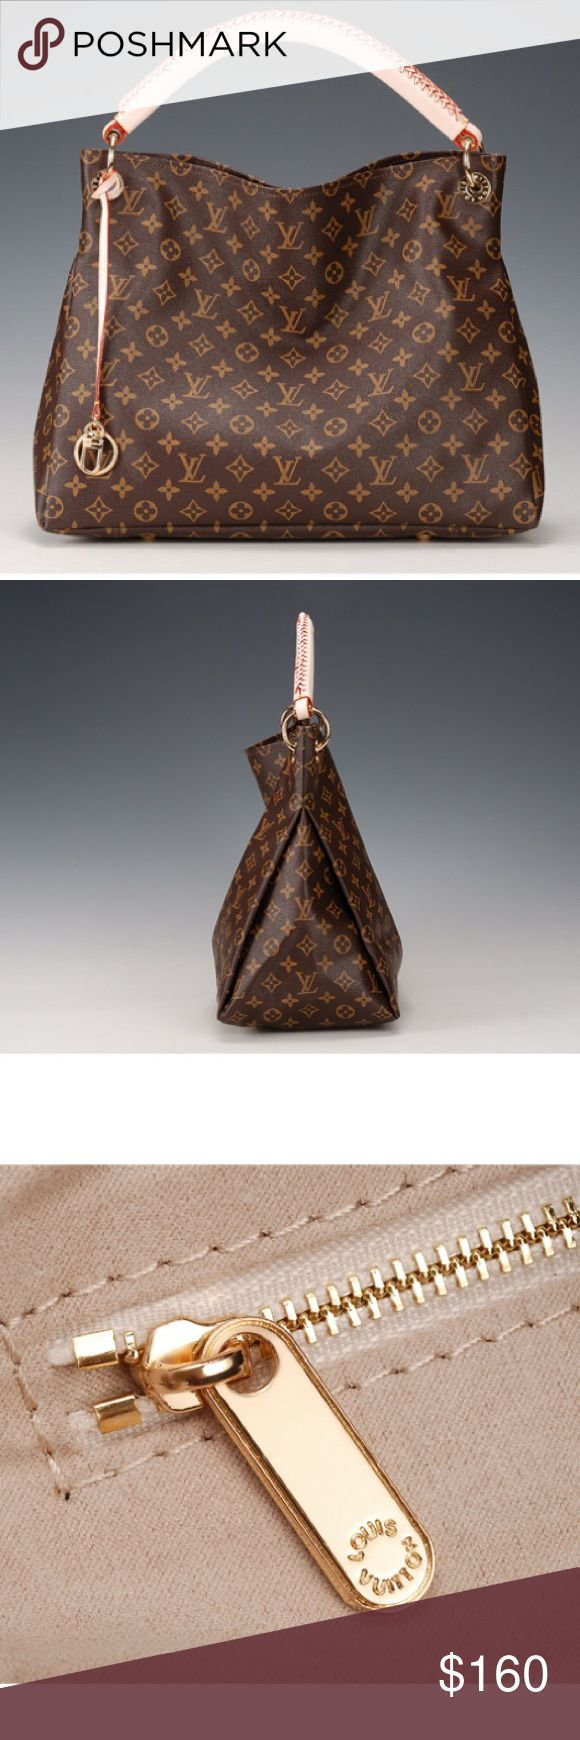 Louis vuitton mm artsy brand new louis vuitton artsy in lv brown monogram i bought